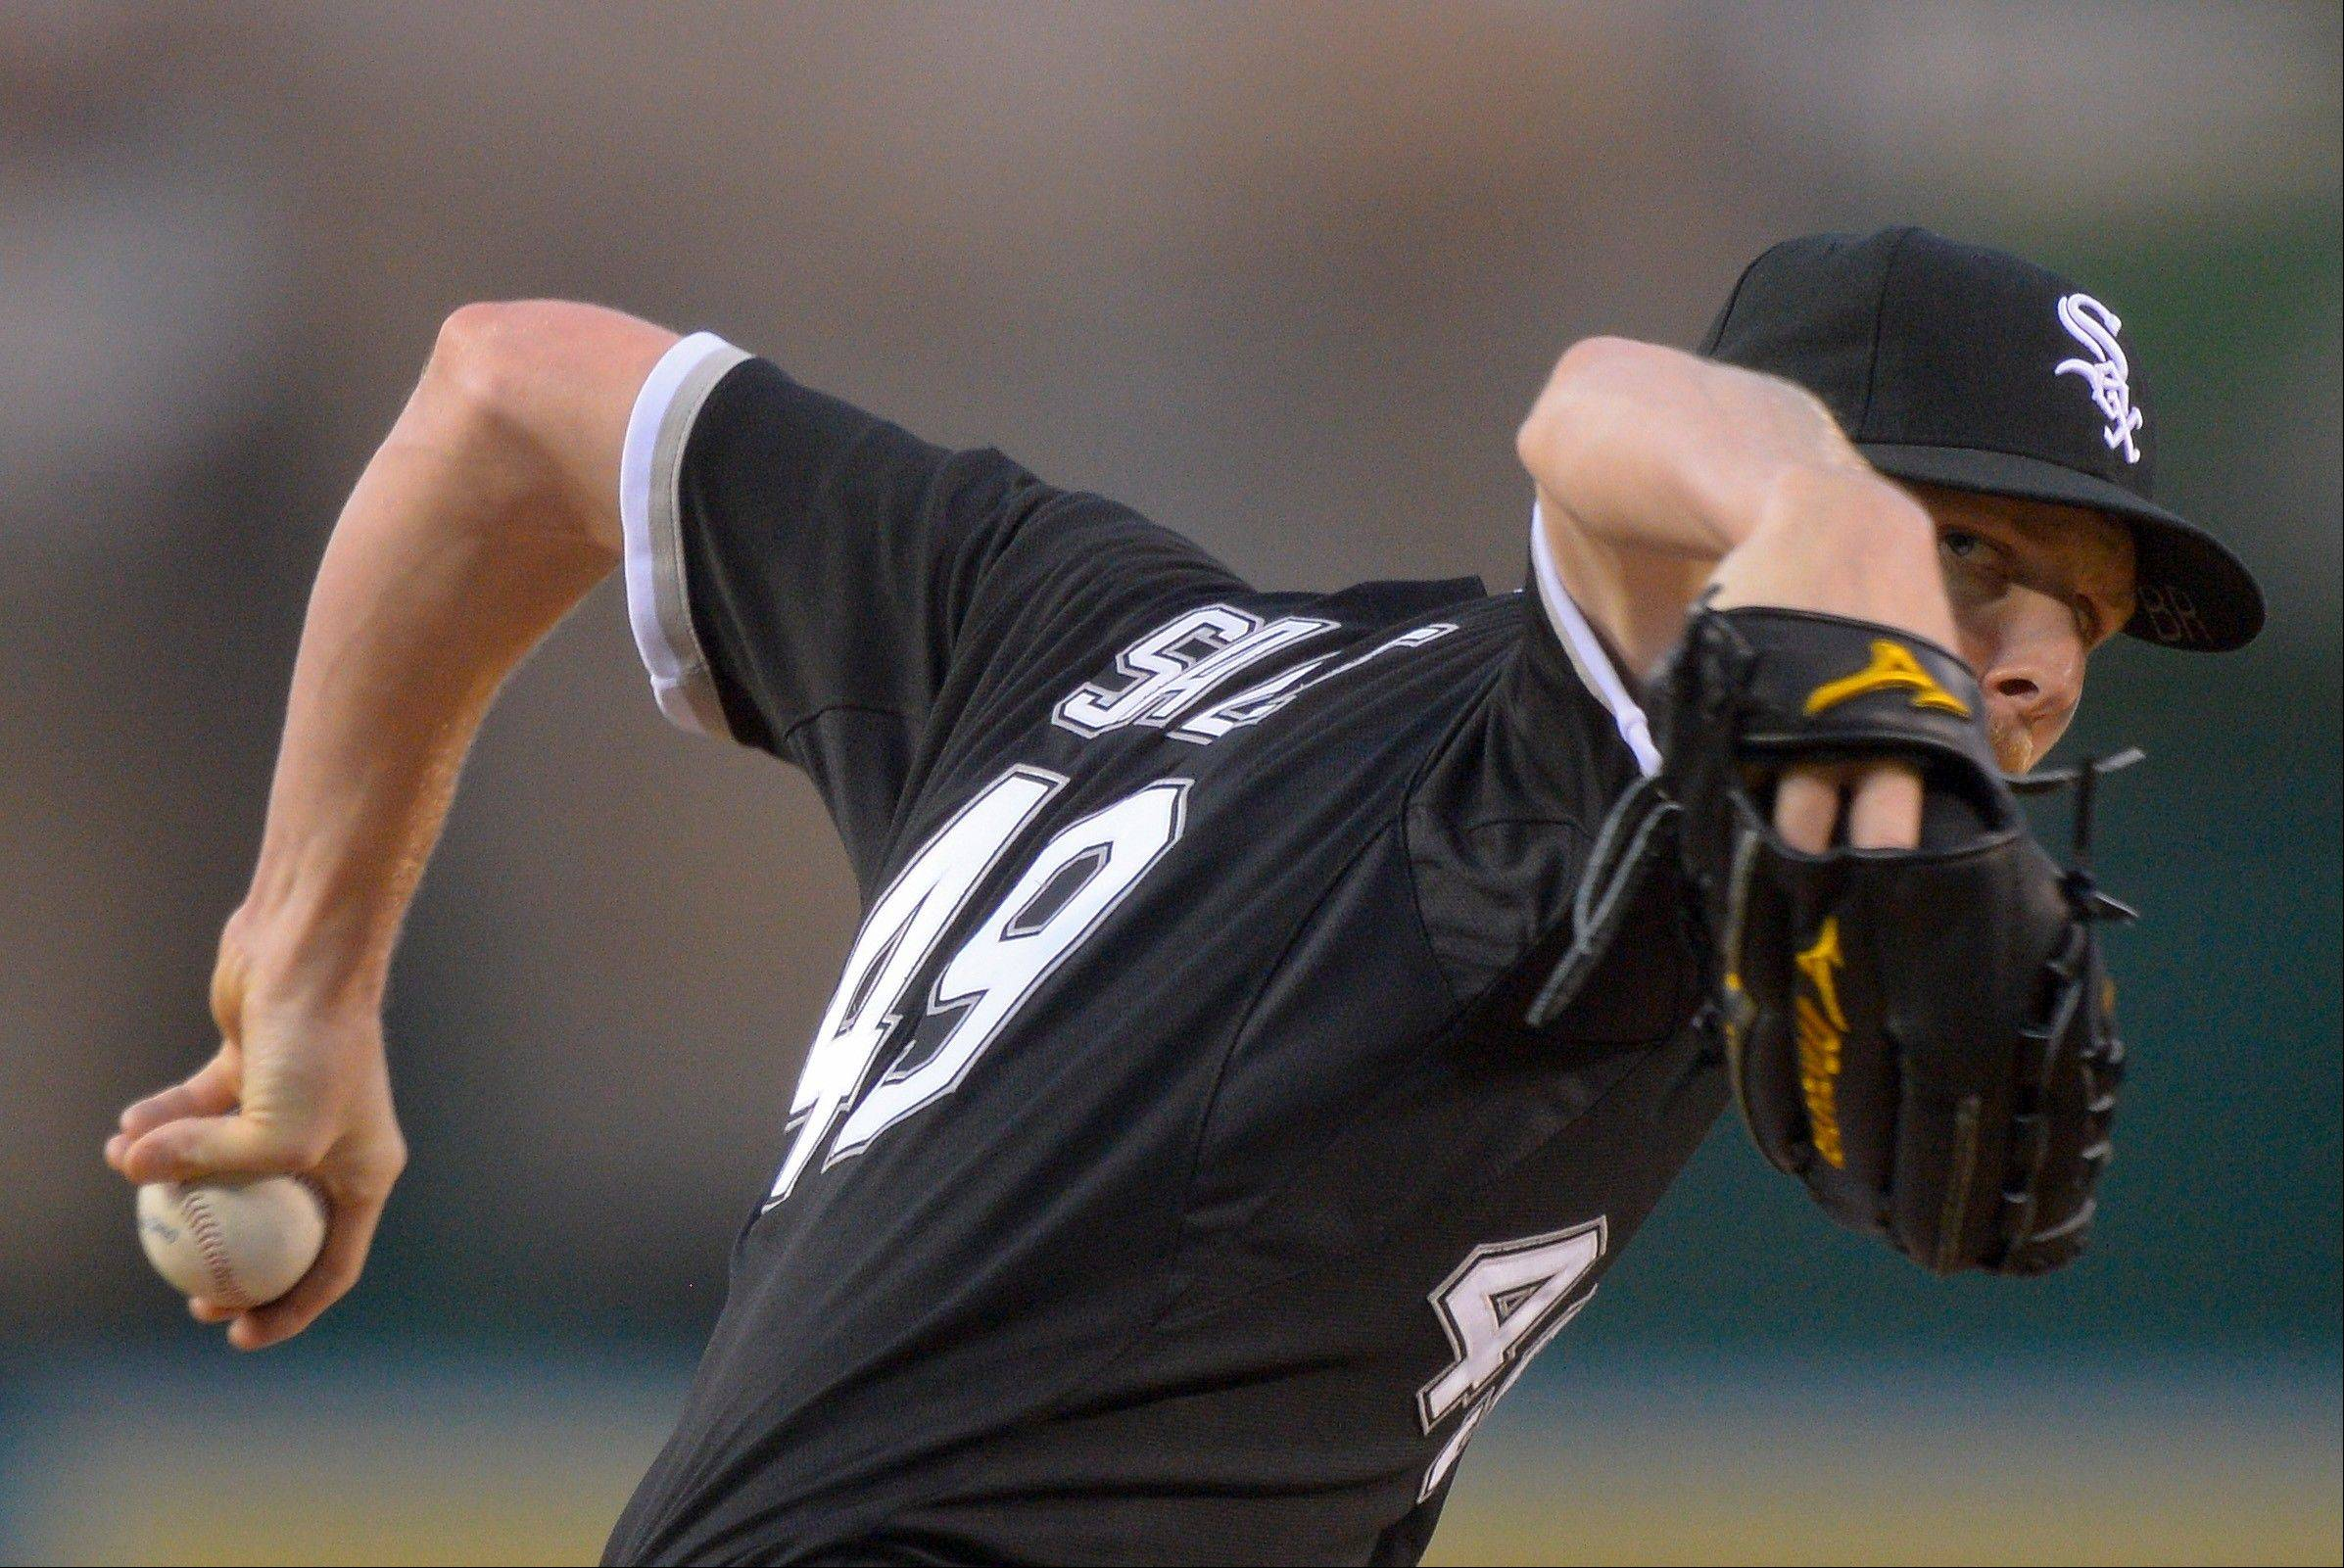 White Sox starter Chris Sale worked 7 shutout innings Friday night against the Angels, allowing 3 hits.